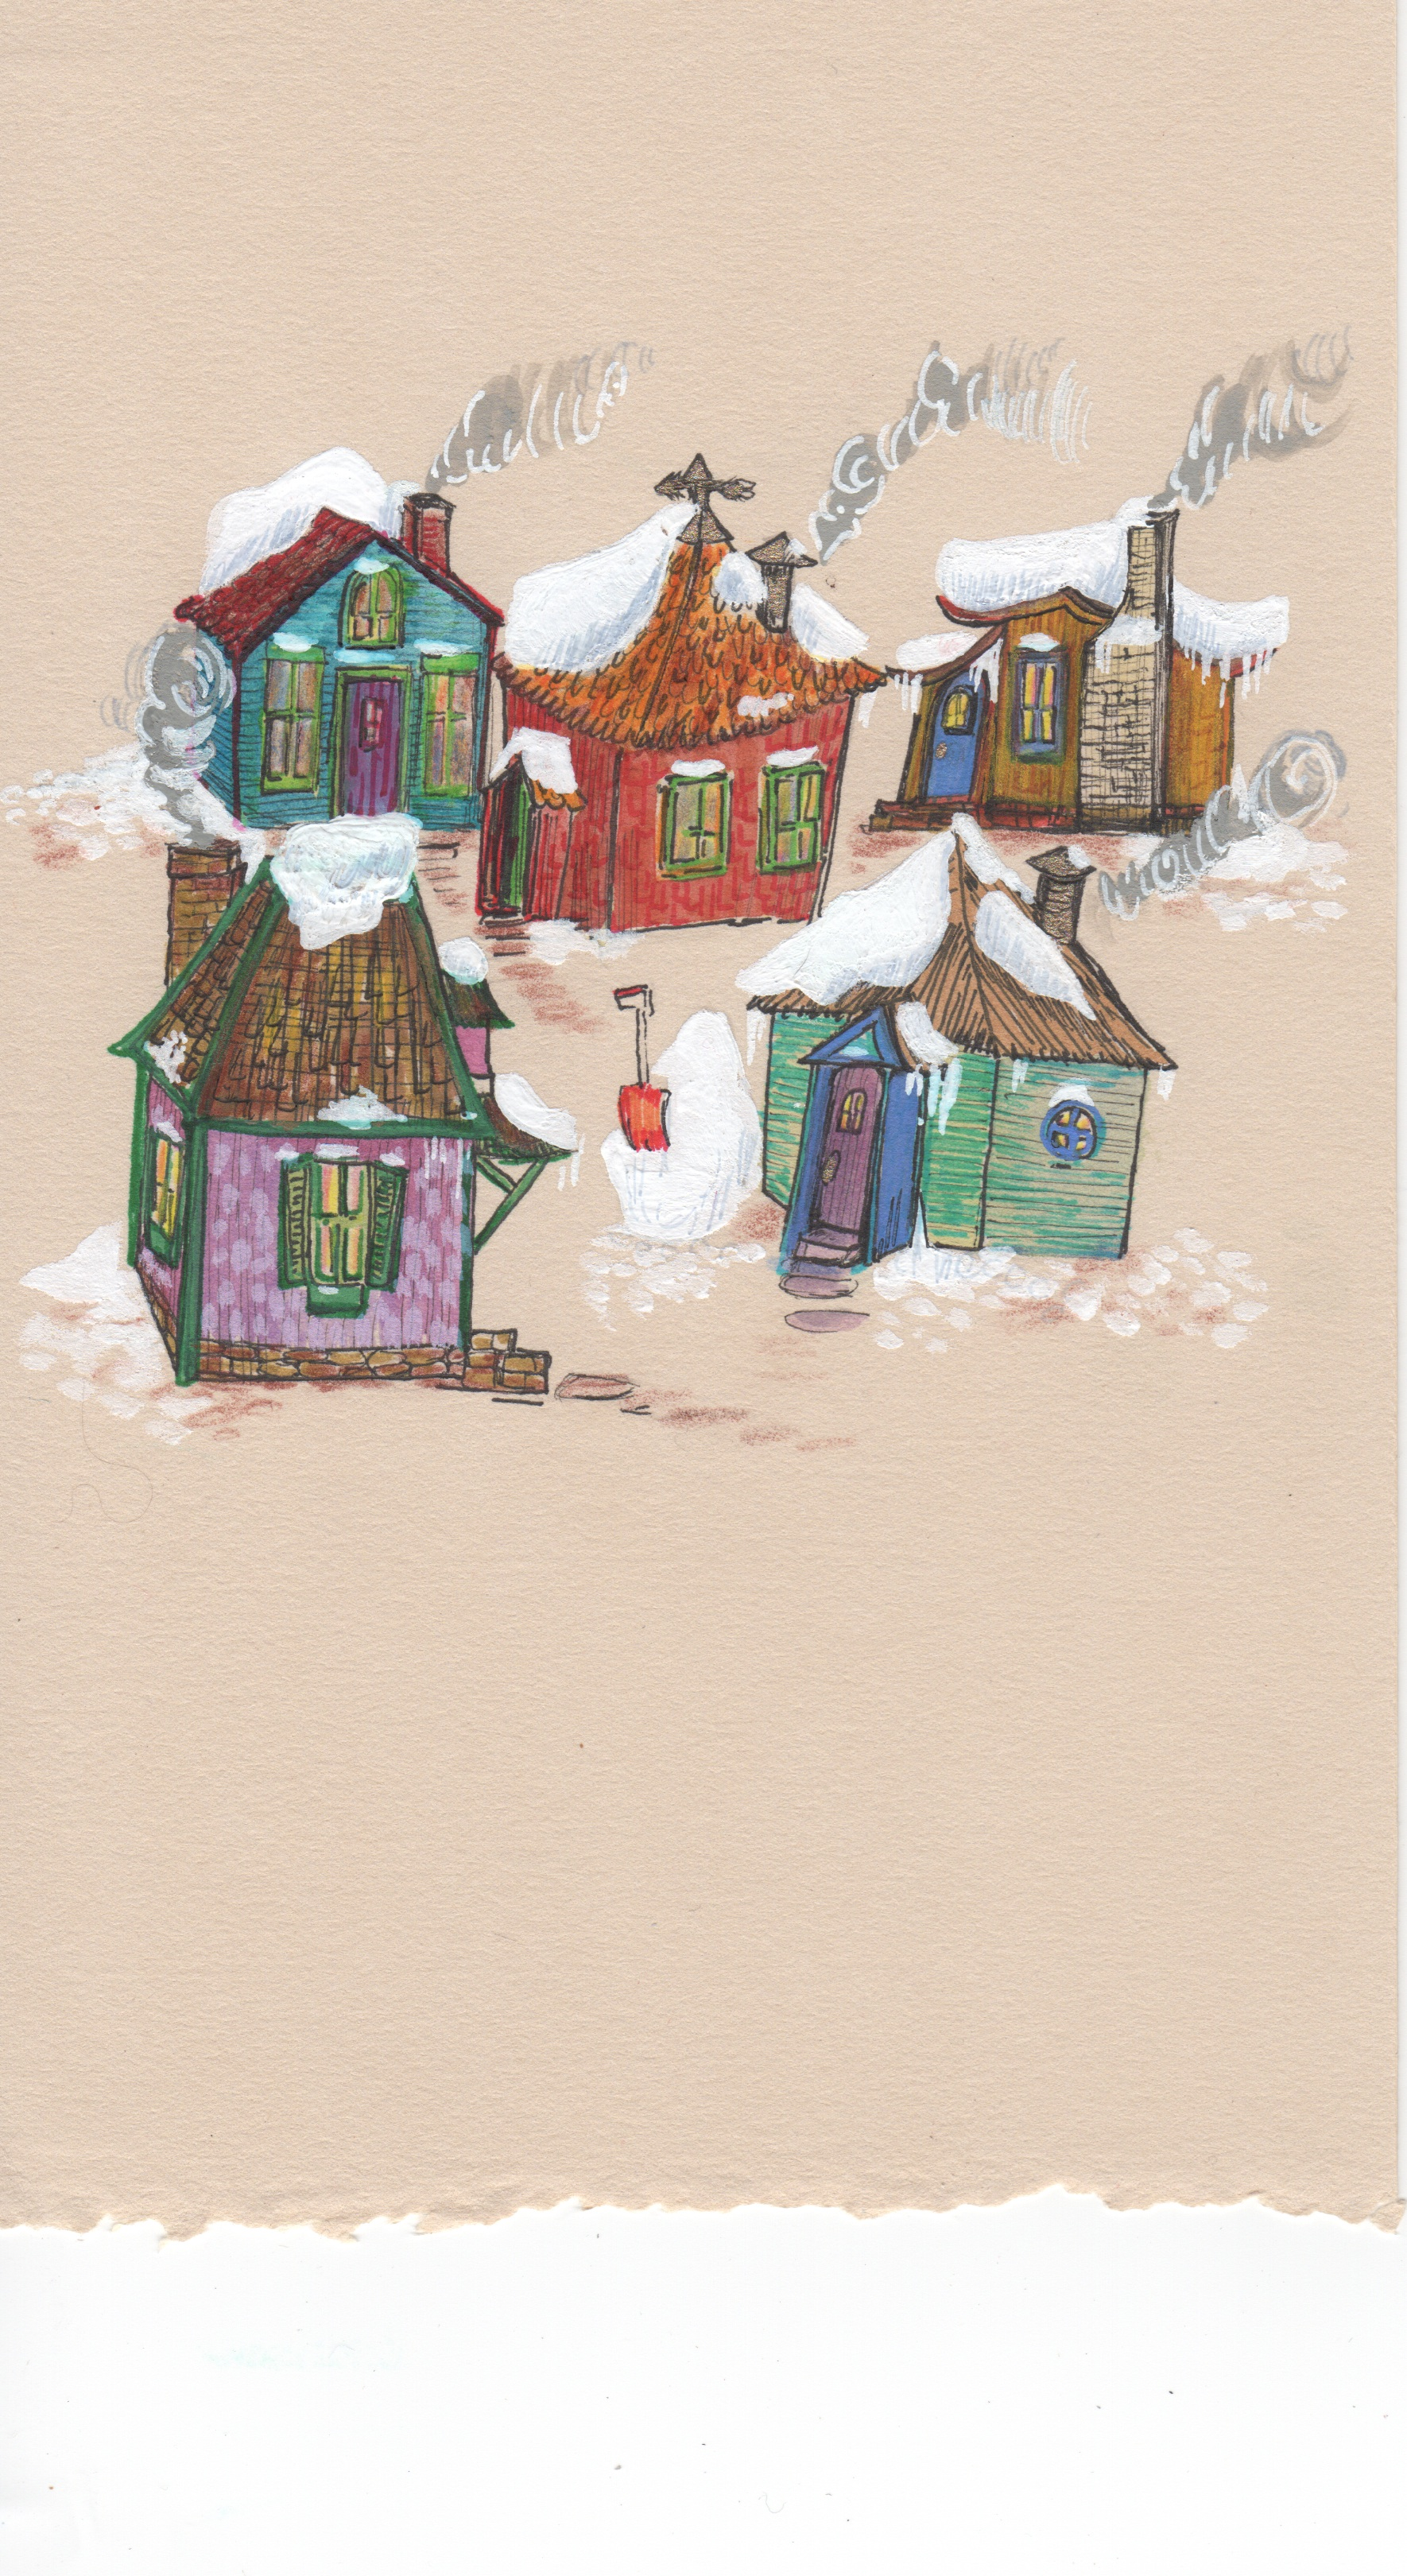 Snowy Houses, gouache, marker and pen on paper, 8 inches by 5 inches, 2013.